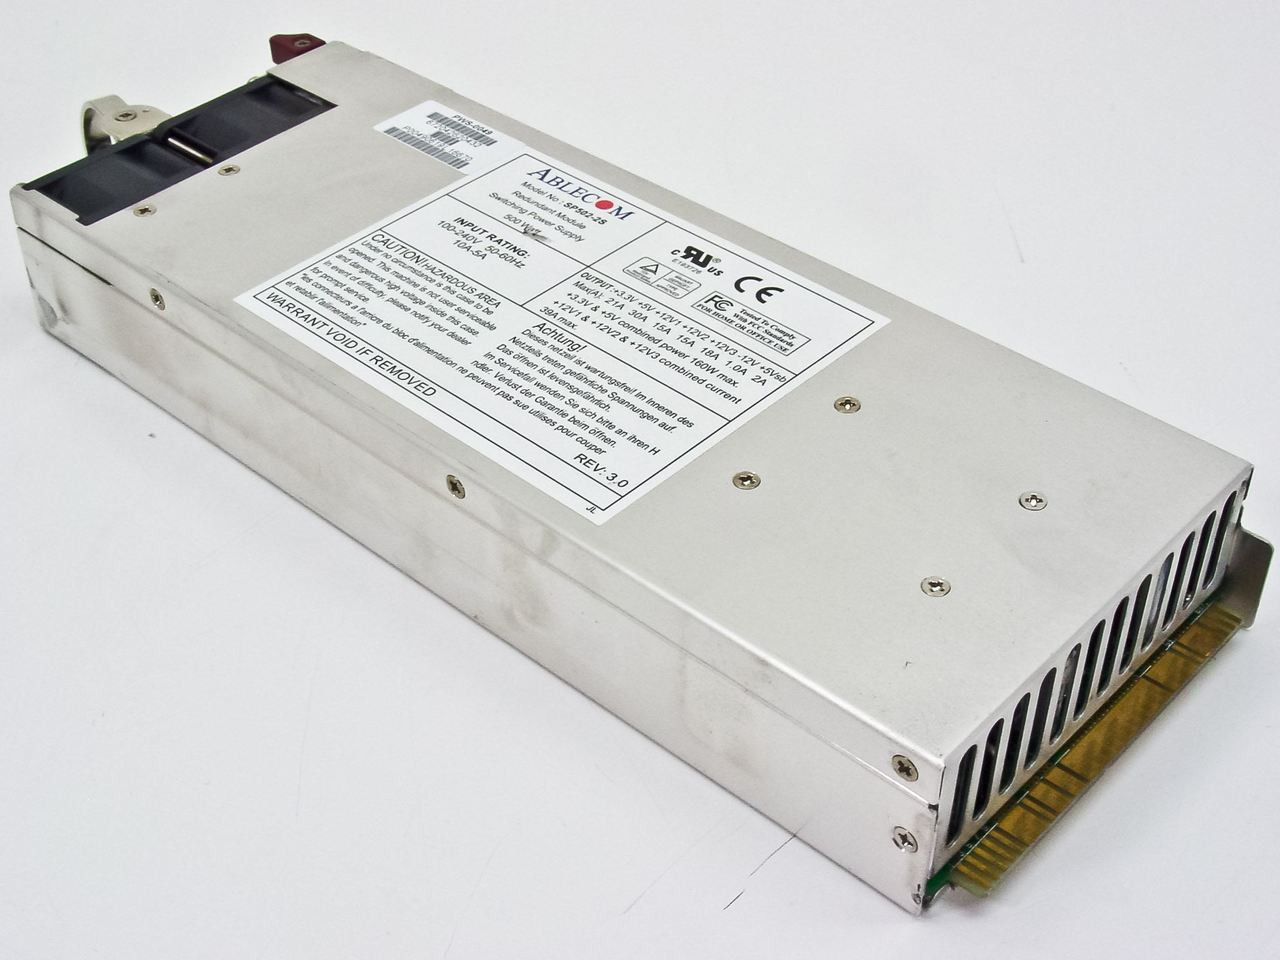 500 Watt Ablecom Redundant Module Switching Power Supply 500 Watt P Sp502 2s